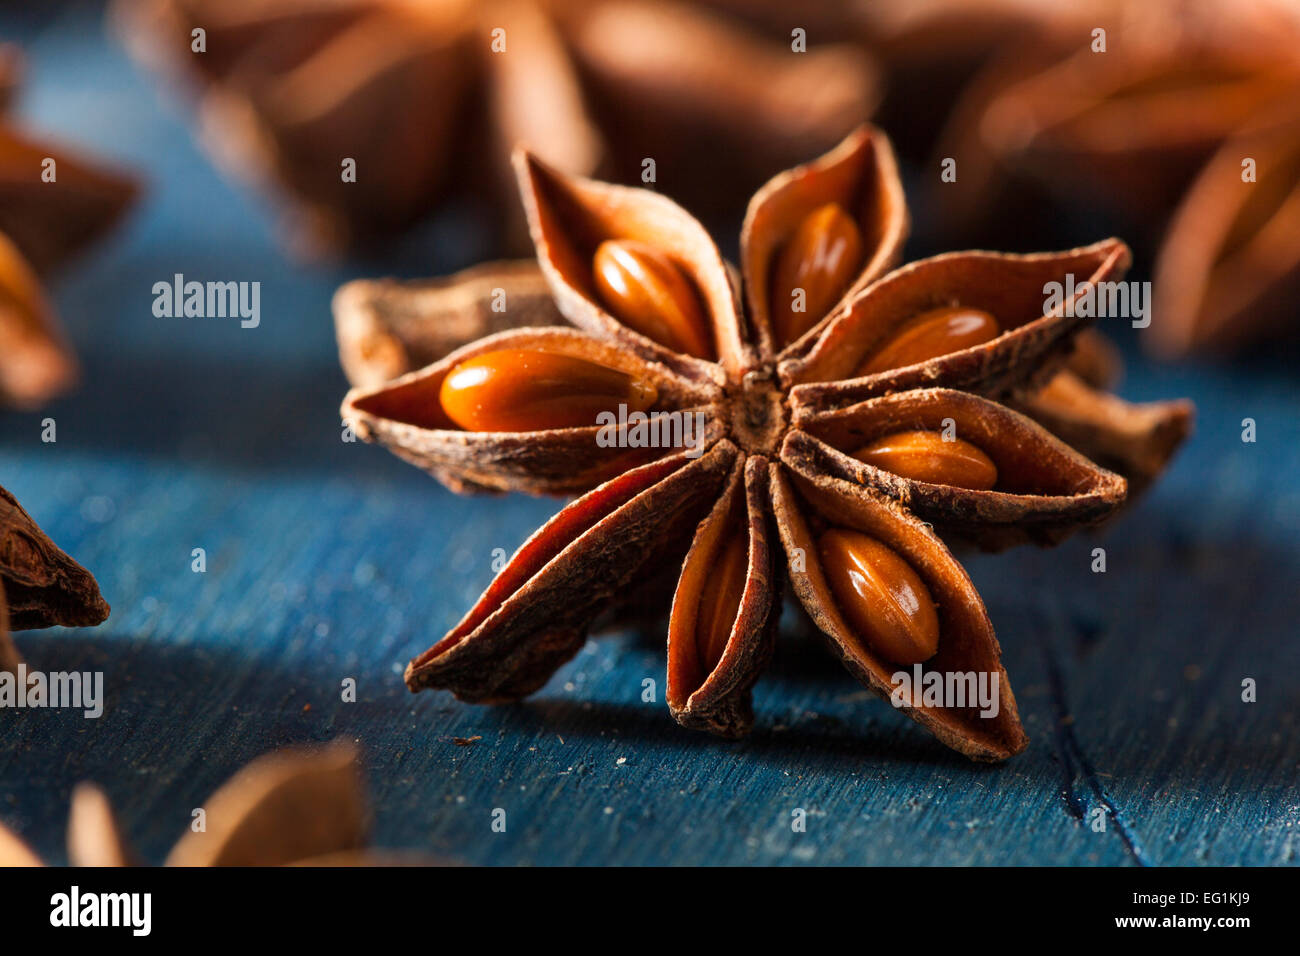 Organic Dry Star of Anise on a Background - Stock Image